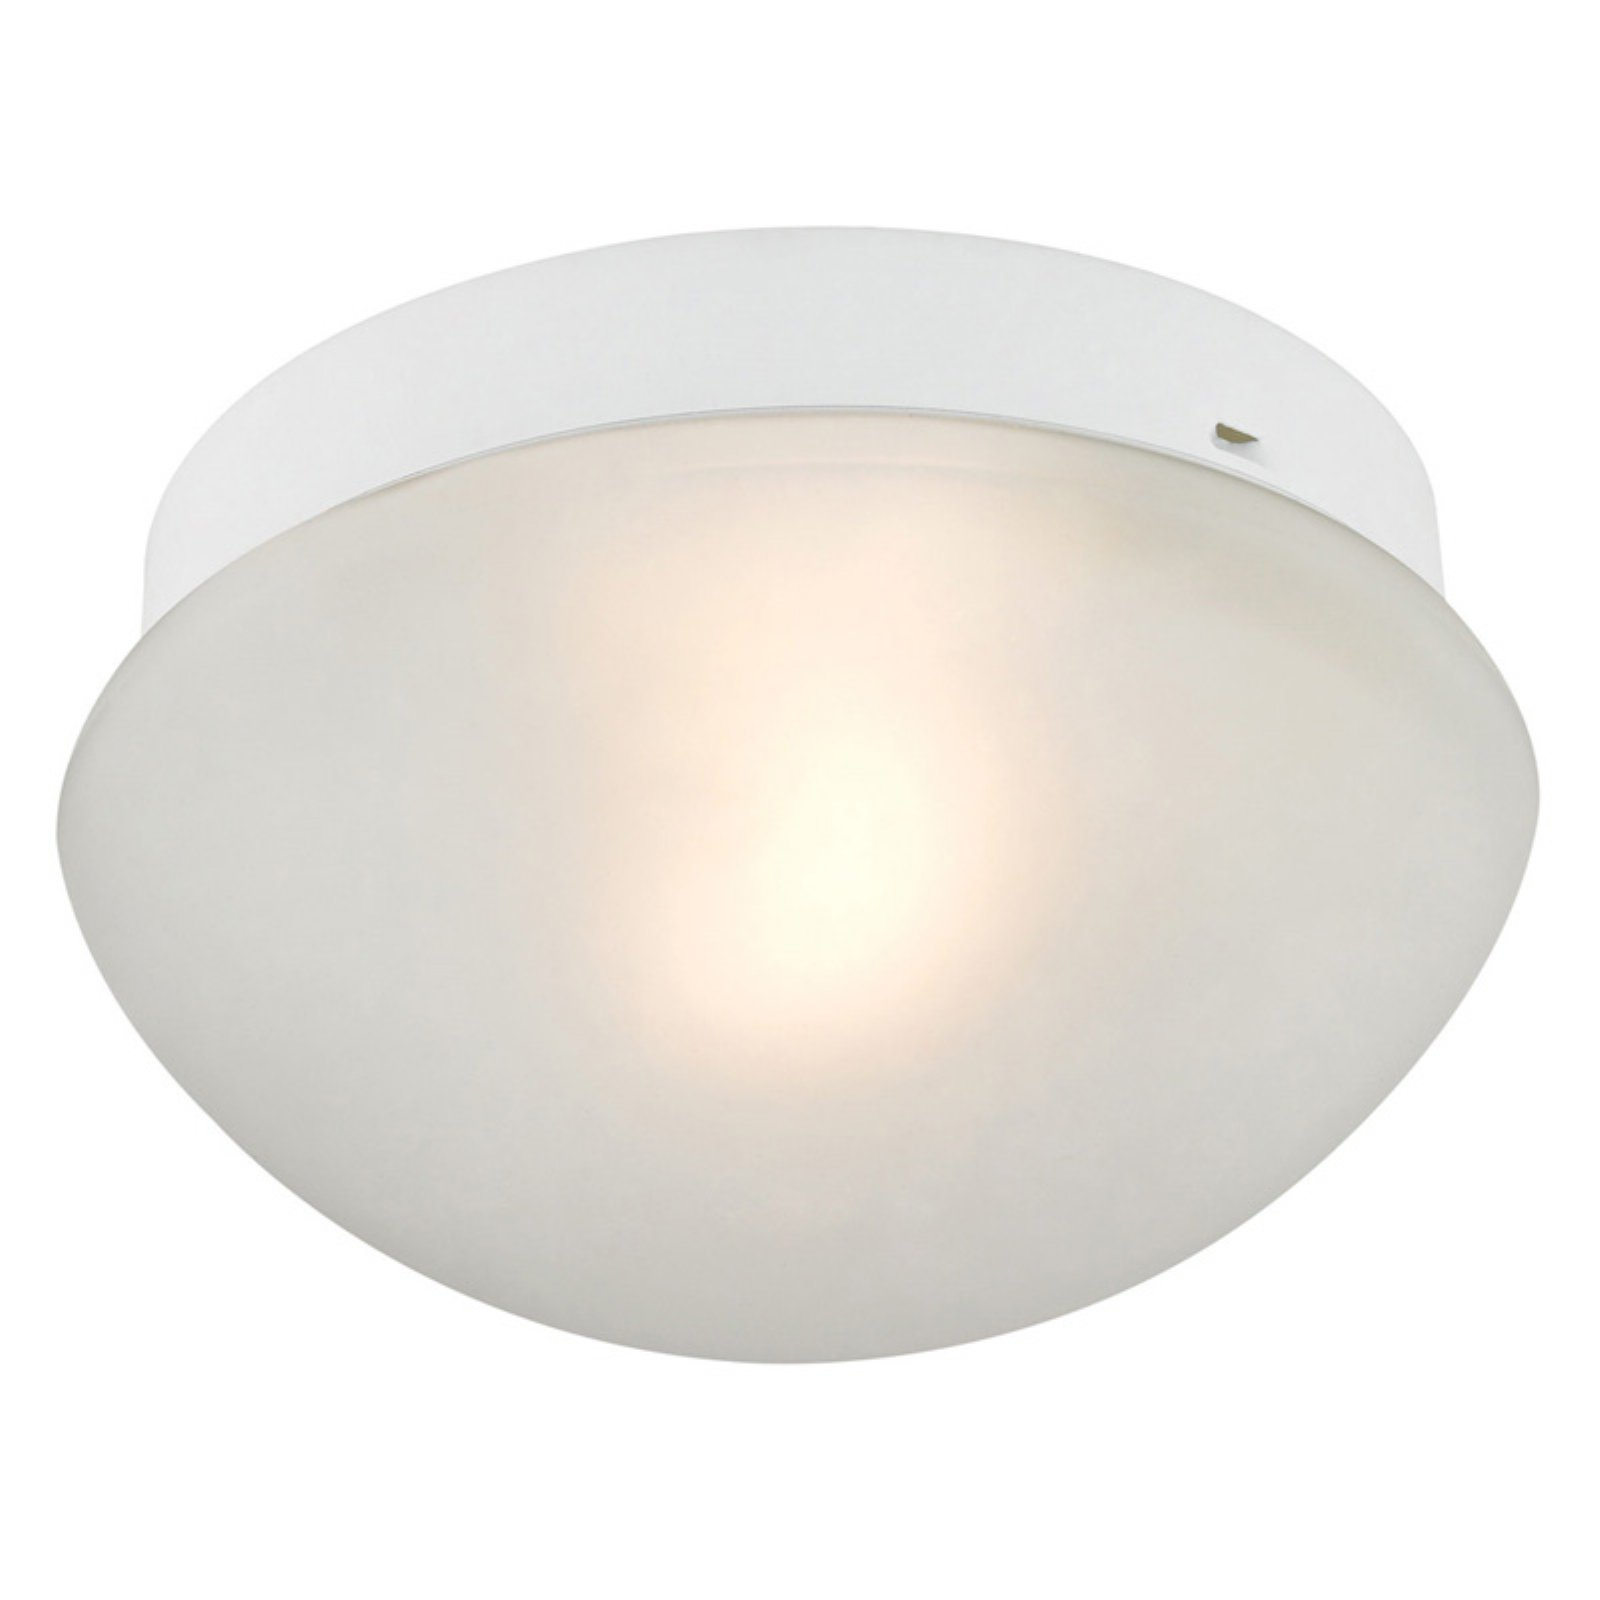 Thomas Lighting Mushroom 7351 Flush Mount Ceiling Light by CornerStone